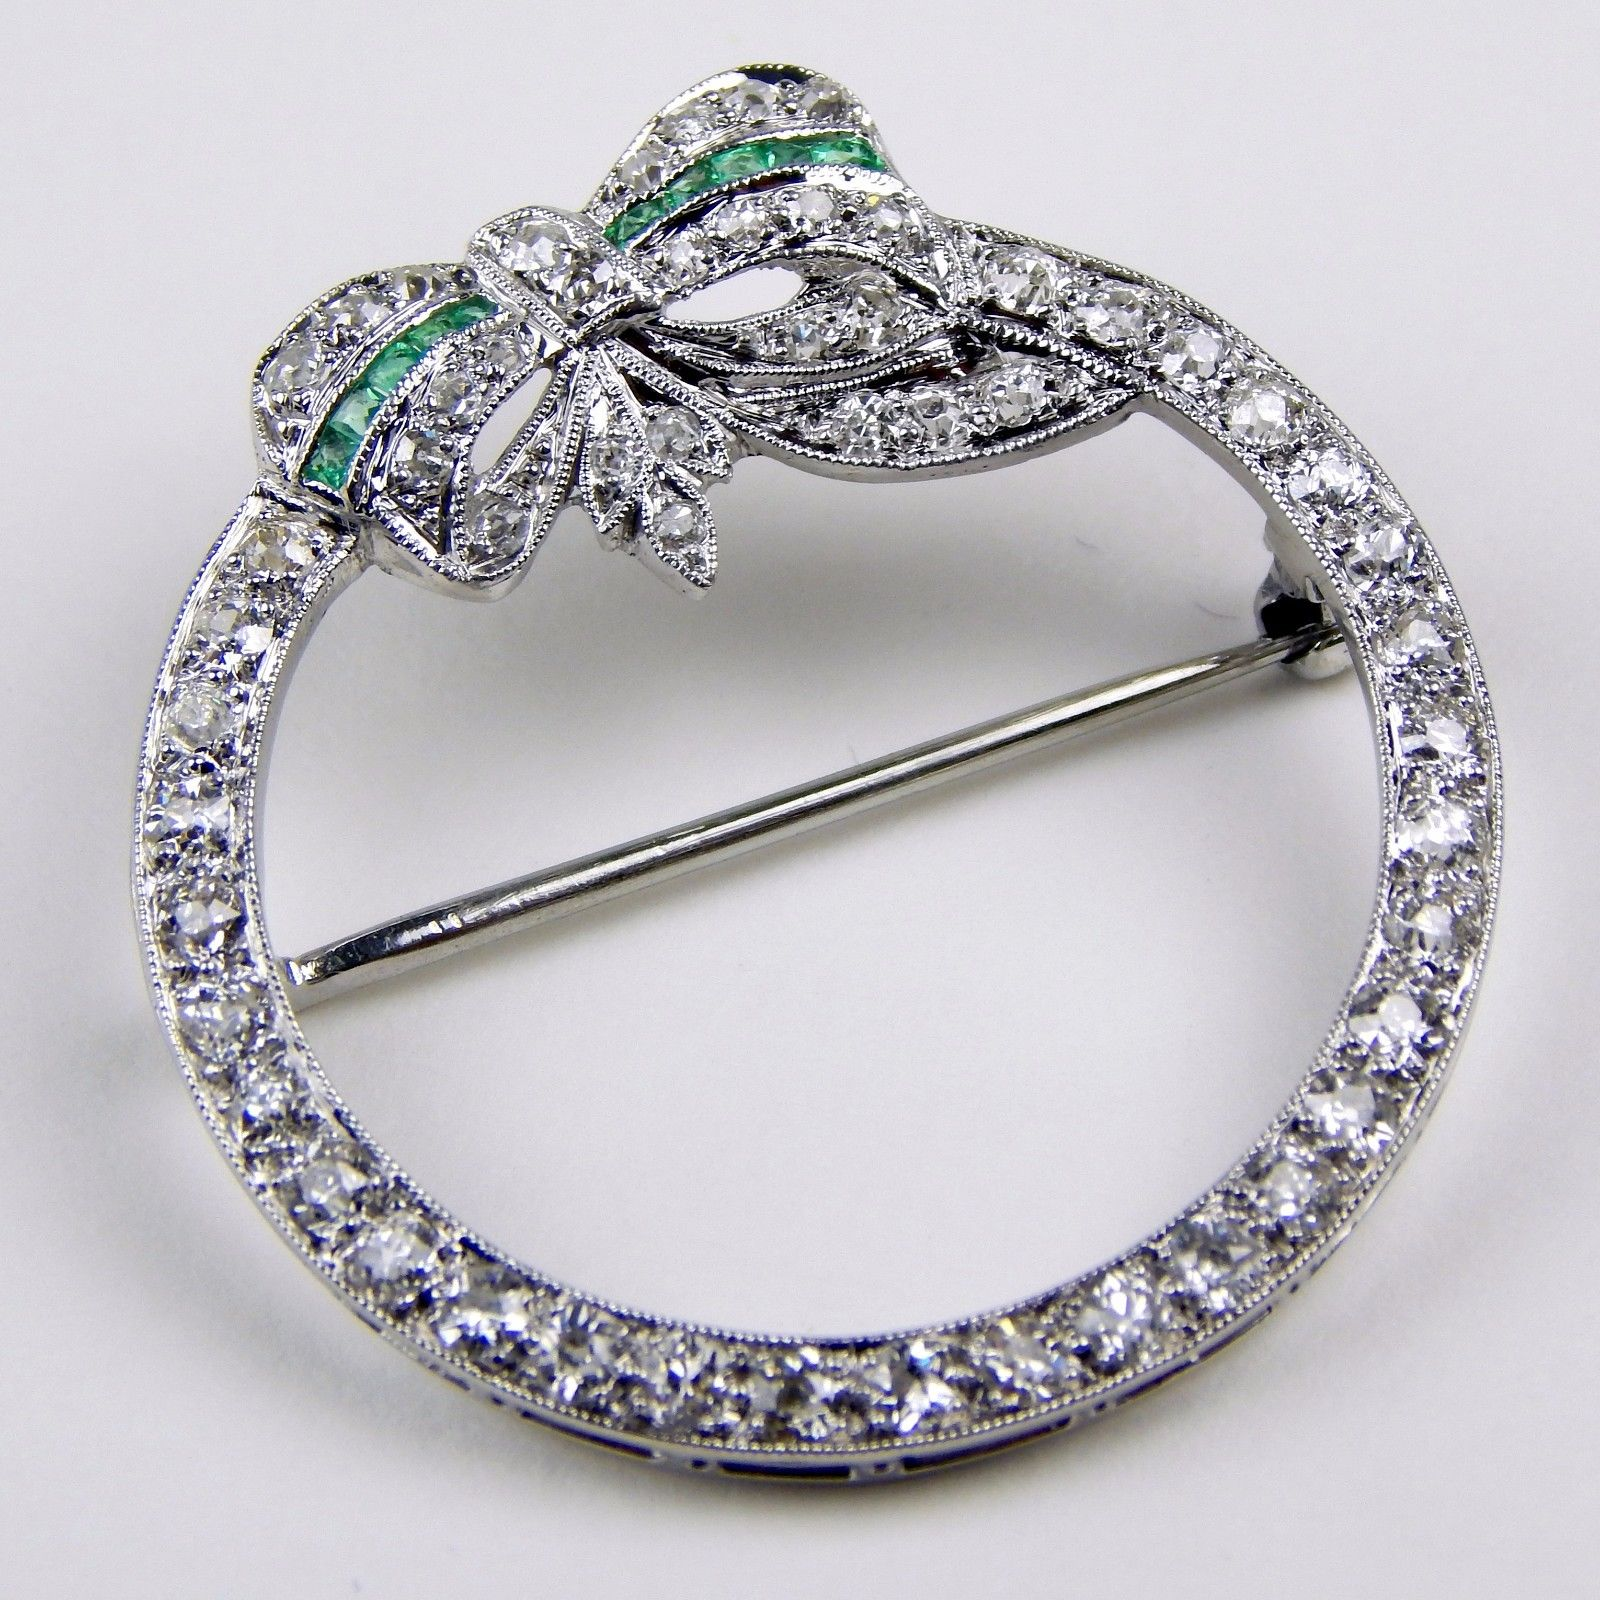 Buy antique art decoration bow brooch pin pin platinum a1683 green gemstone diamond ring female accessories